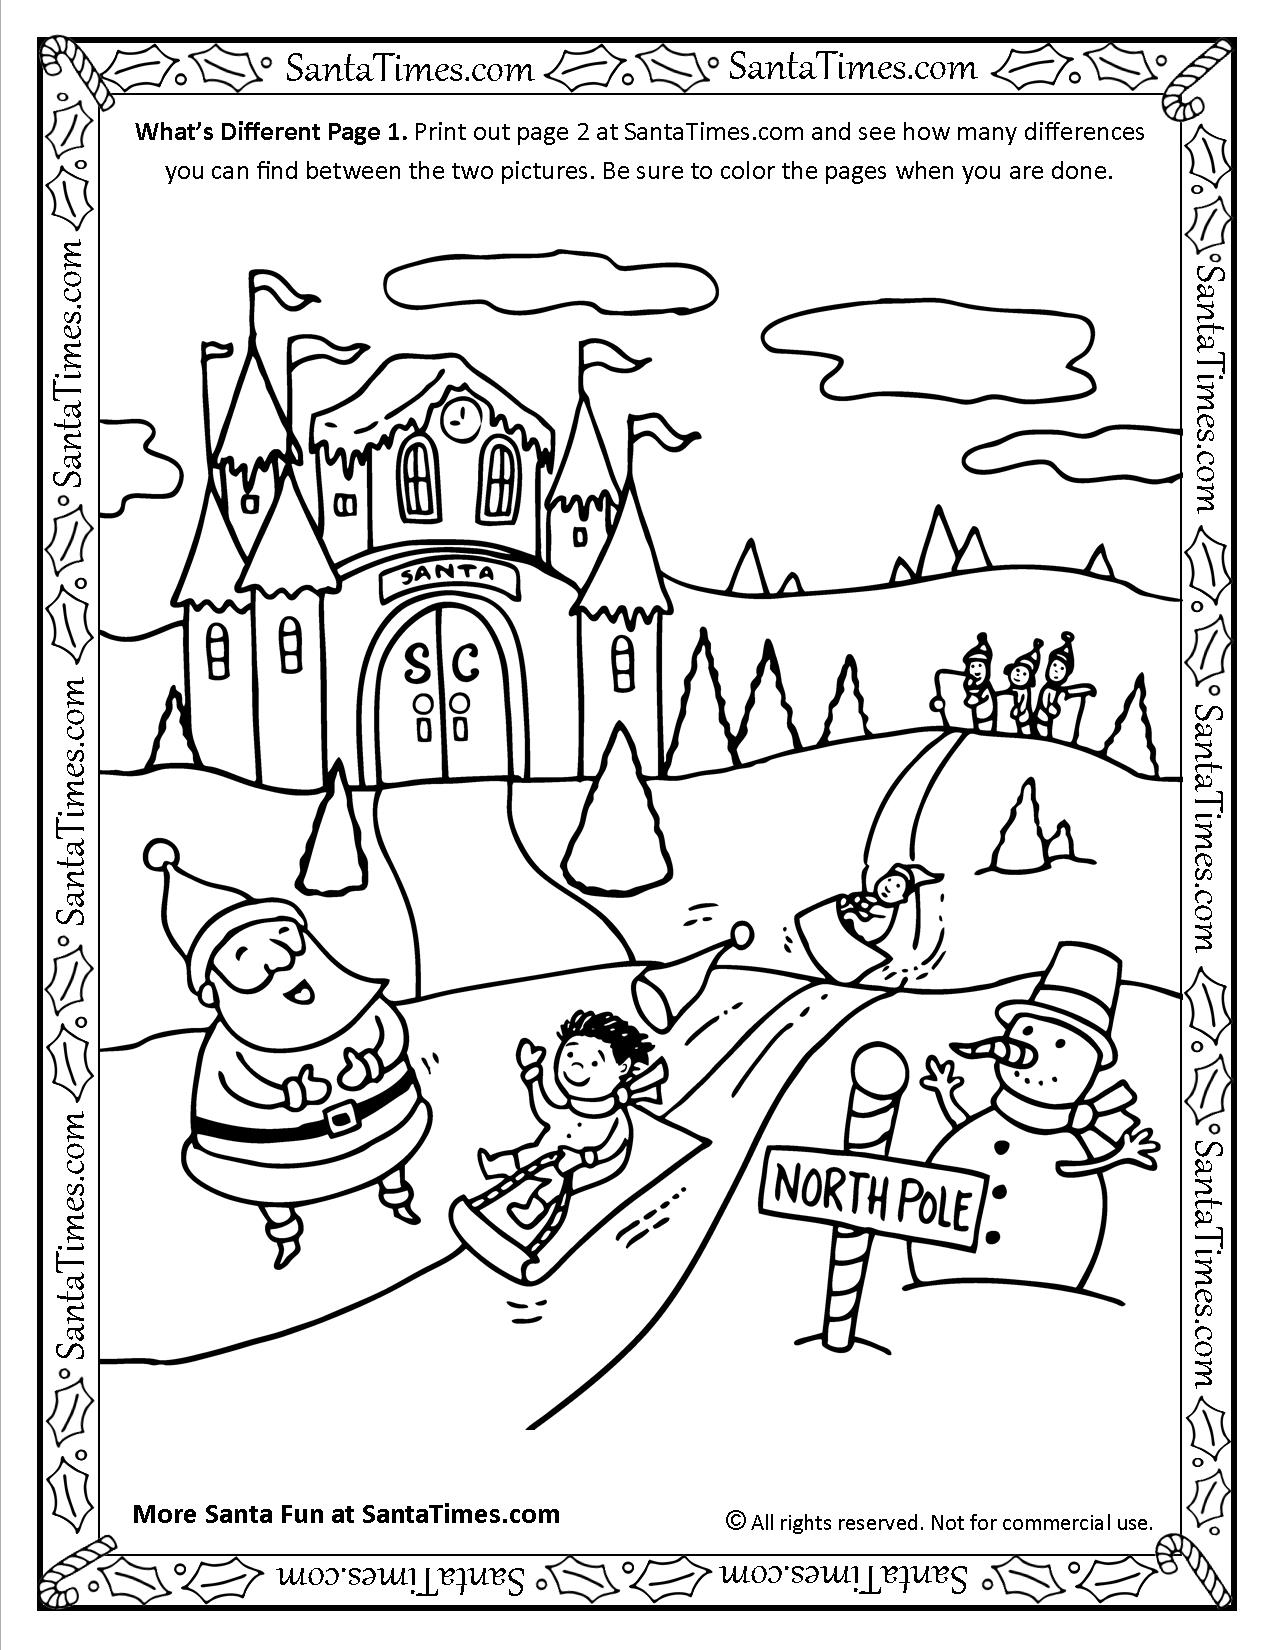 What's Different with Santa Page 1 activity and coloring page